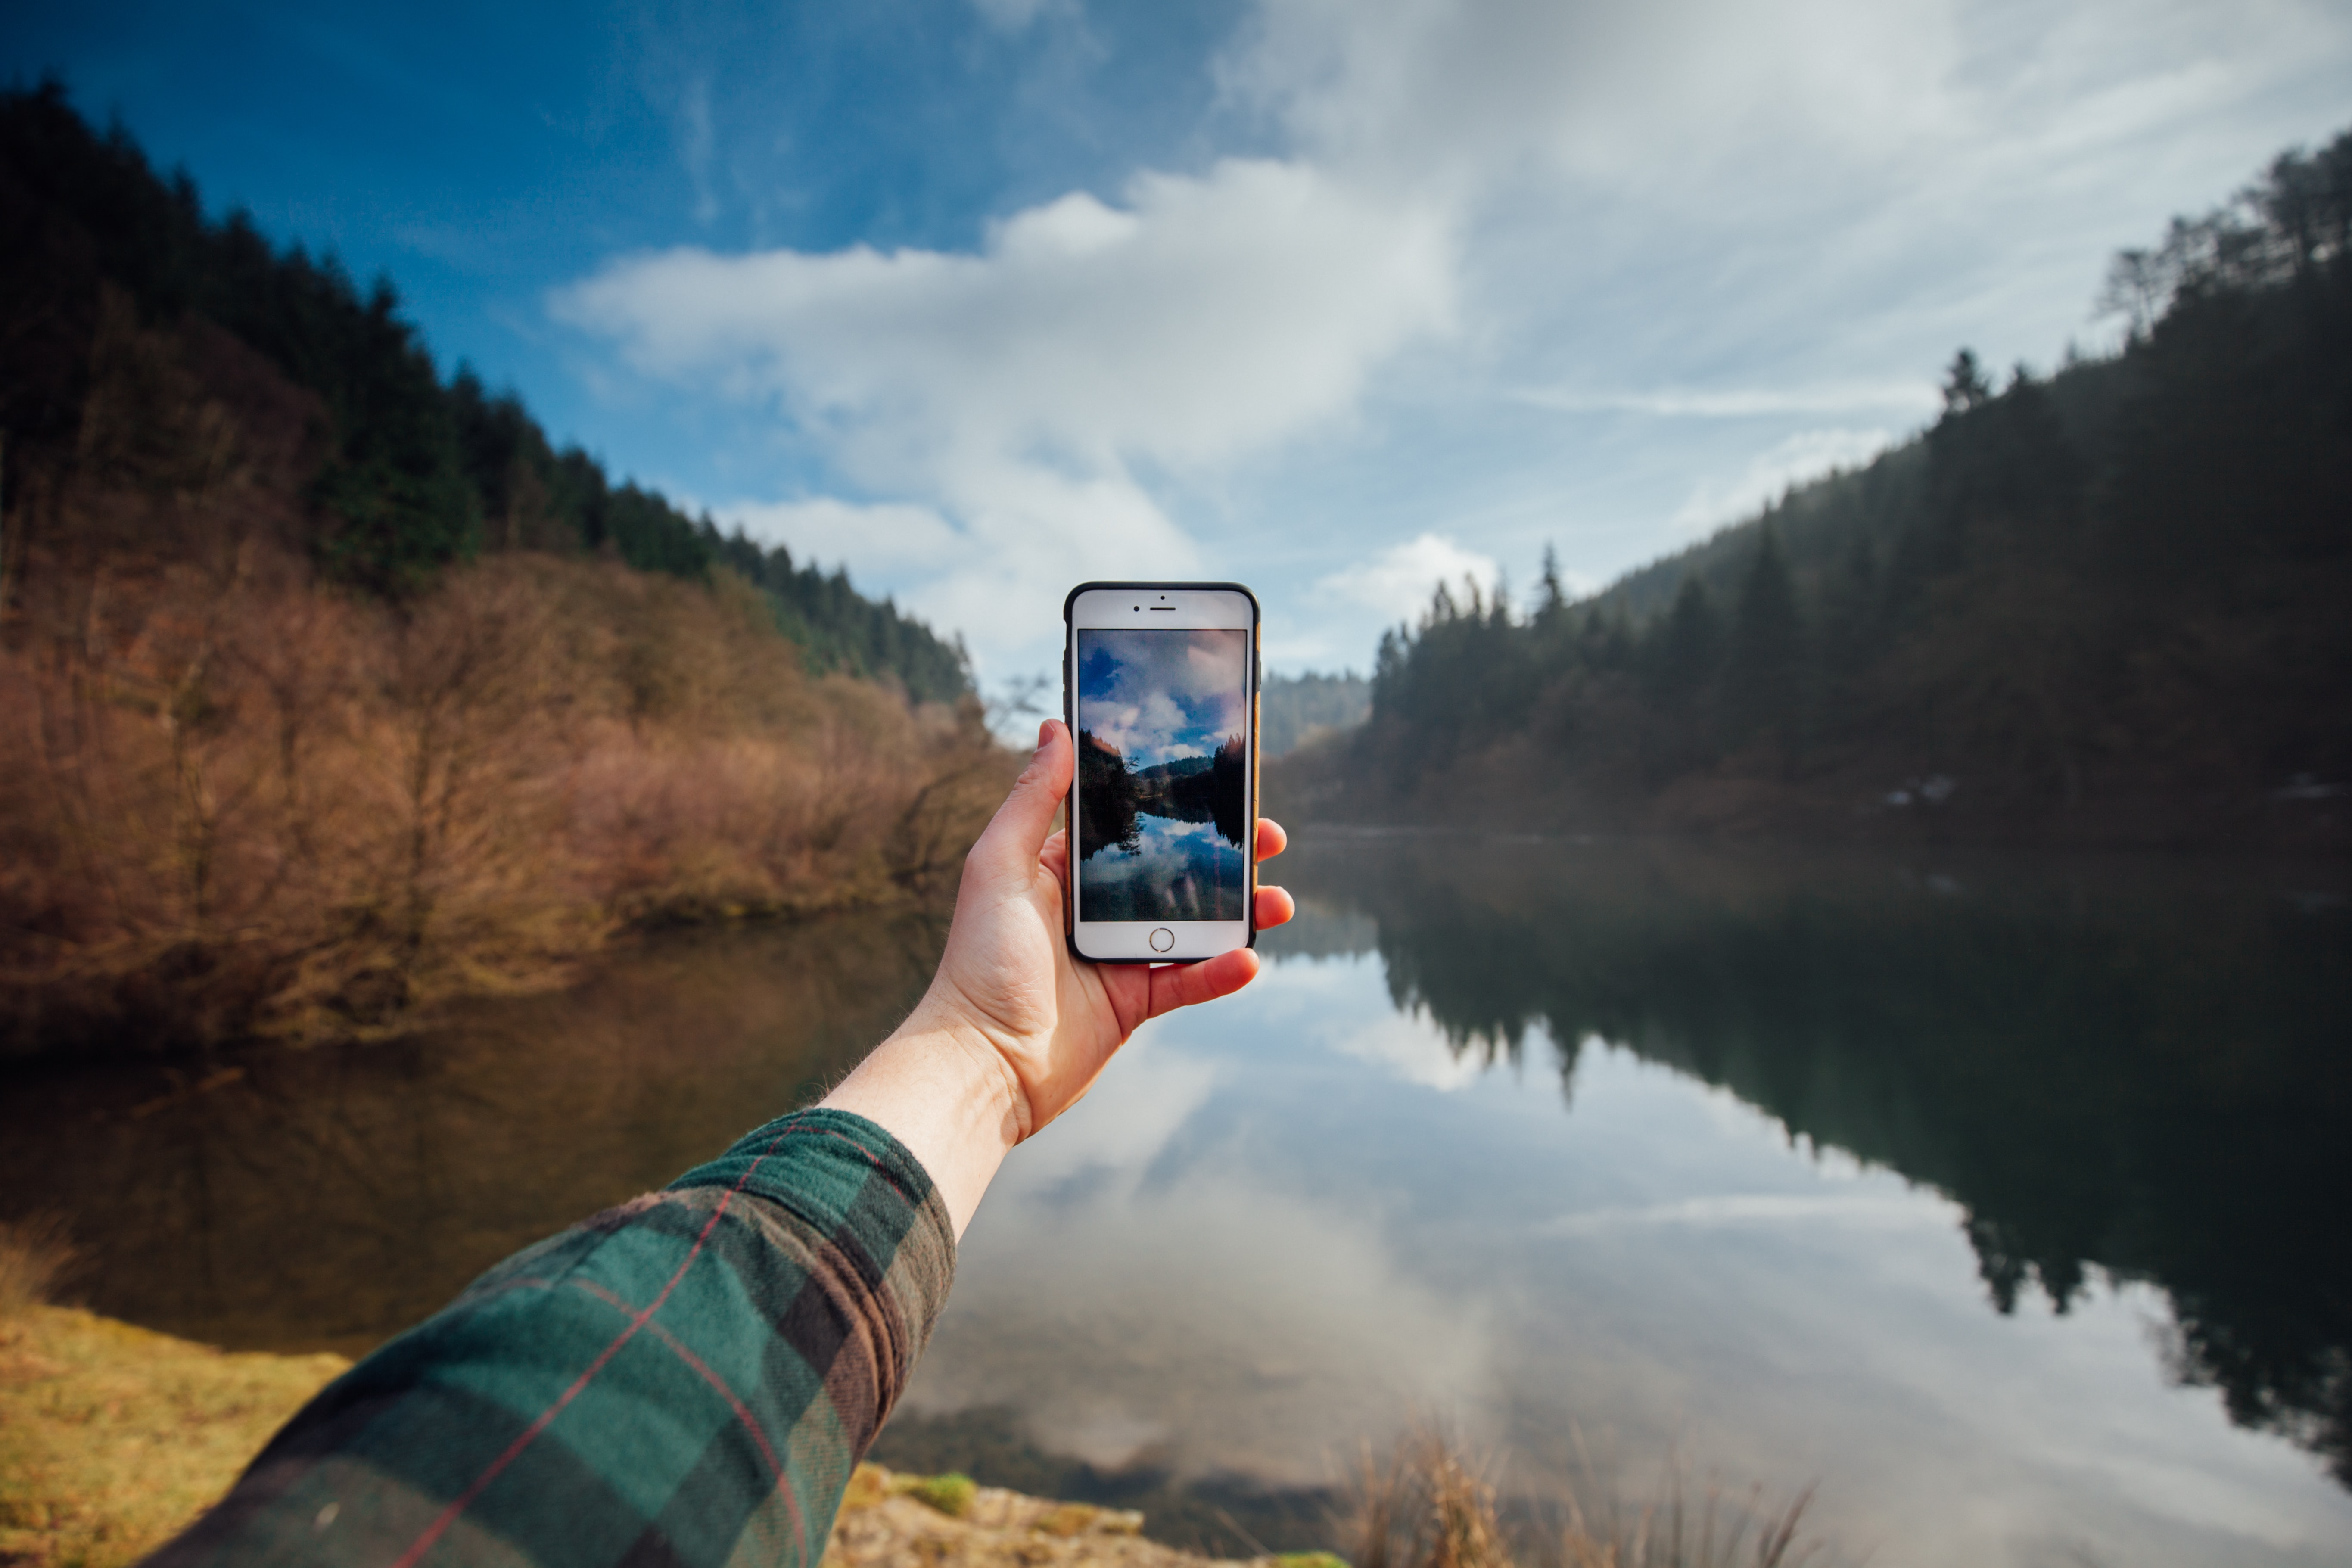 person holding iPhone while taking picture of mountains and body of water during daytime